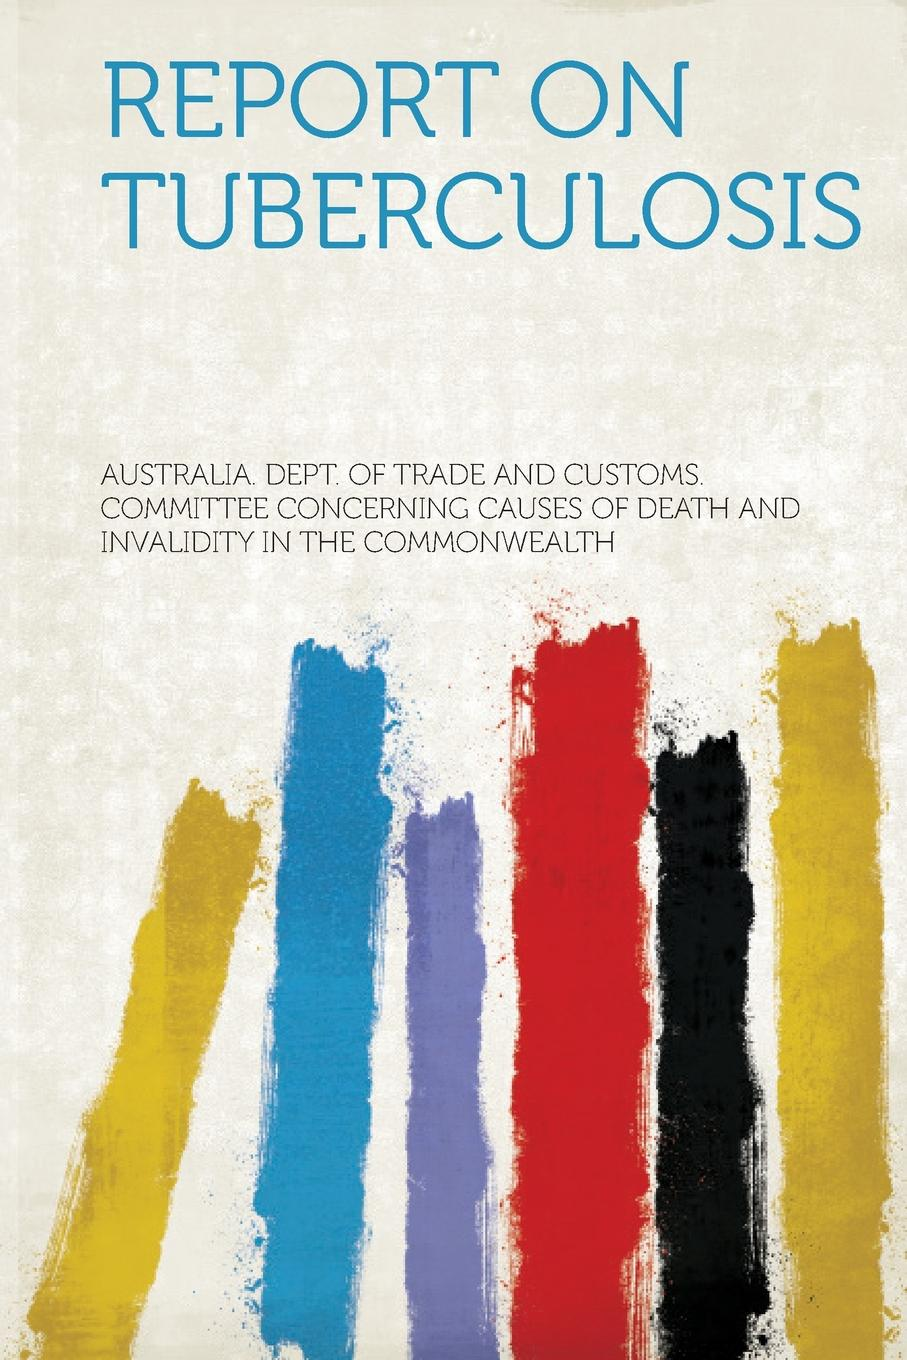 Australia Dept of Trade Commonwealth Report on Tuberculosis